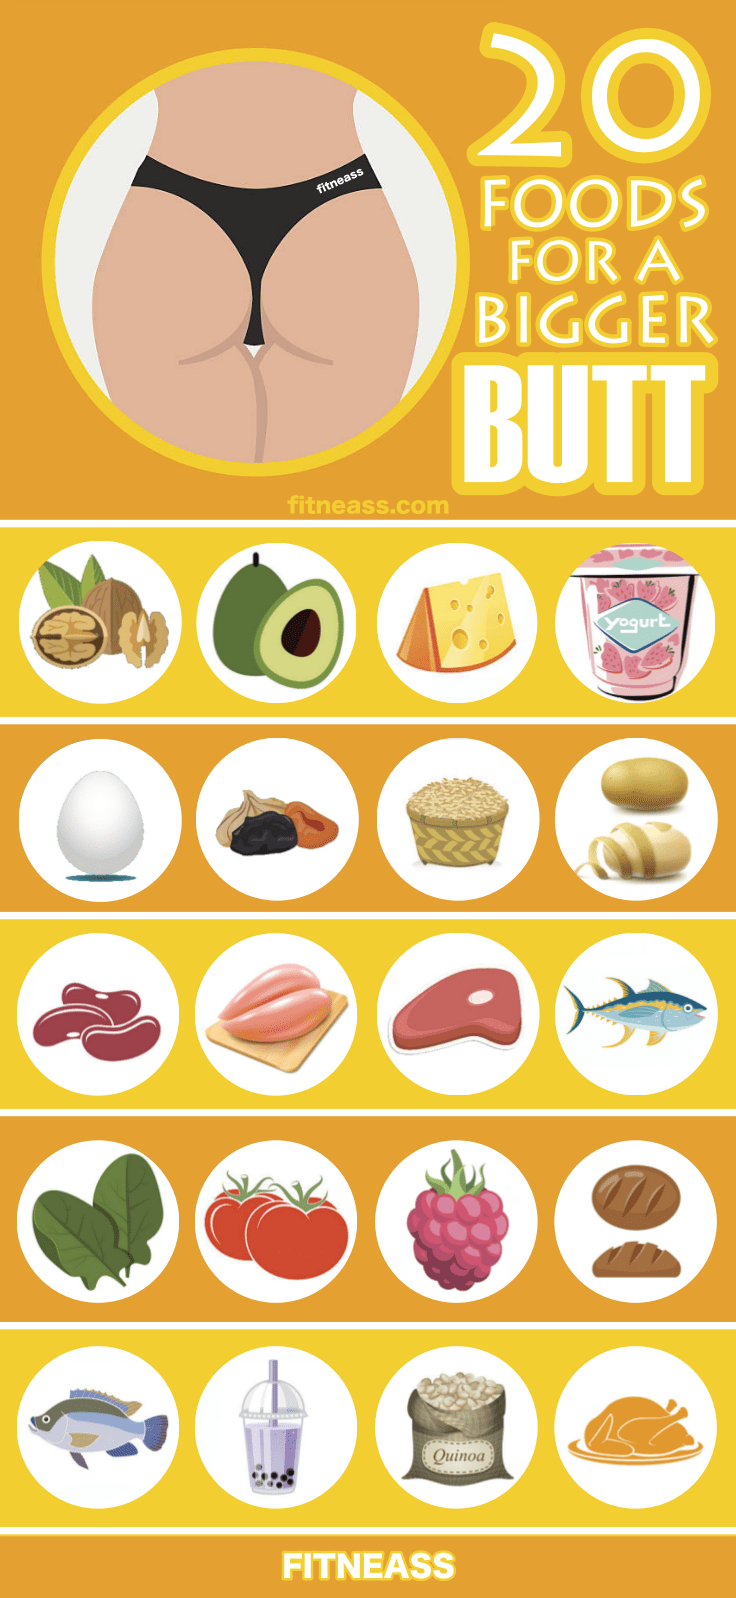 20 Foods For A Bigger Butt